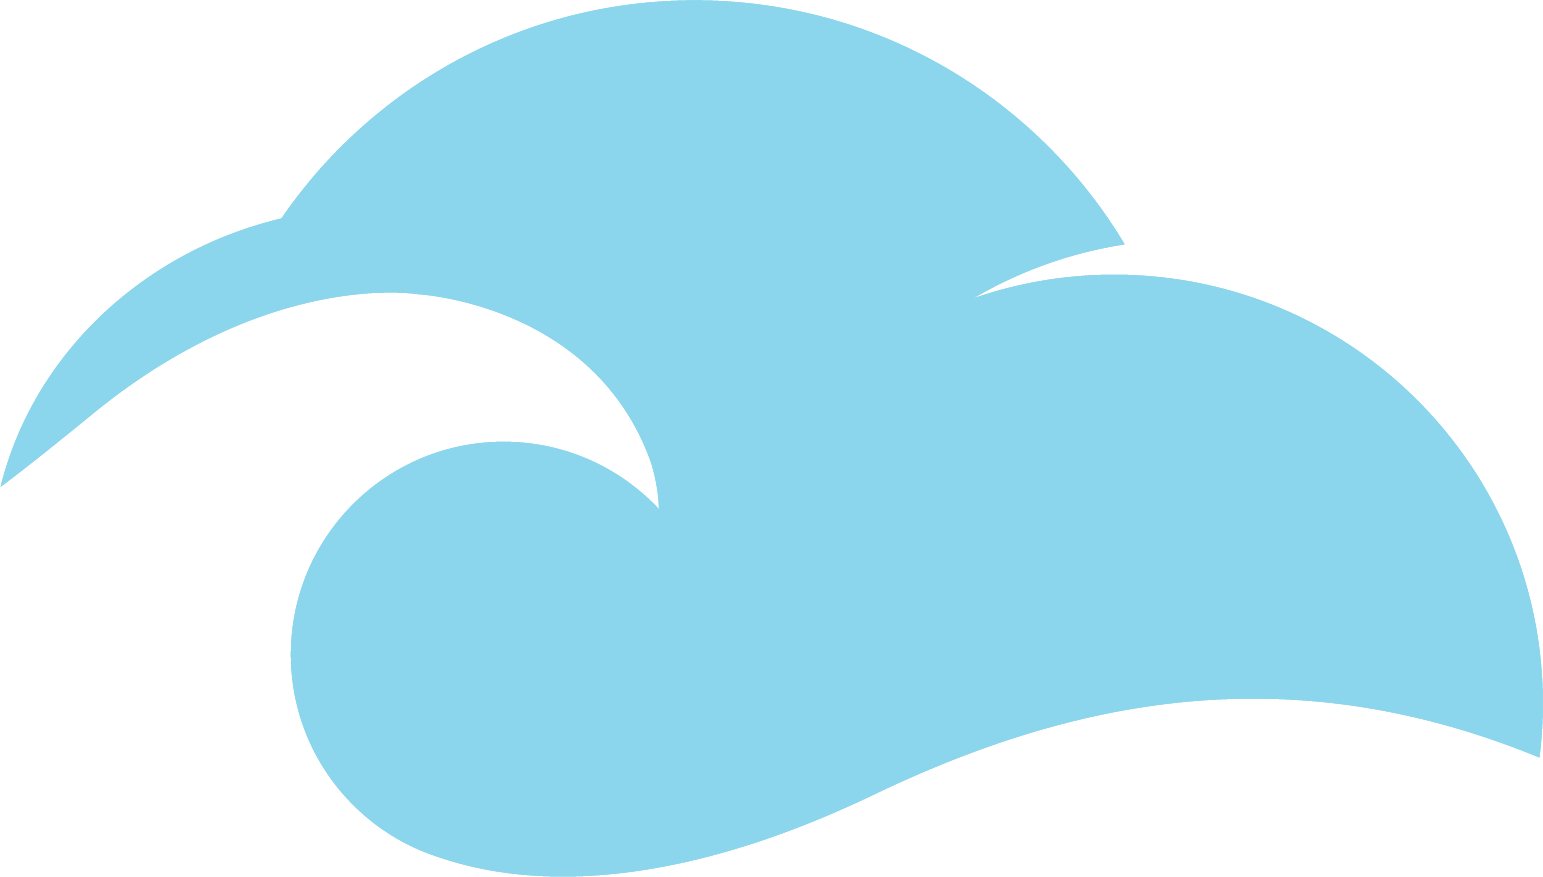 Cloudbreak logo